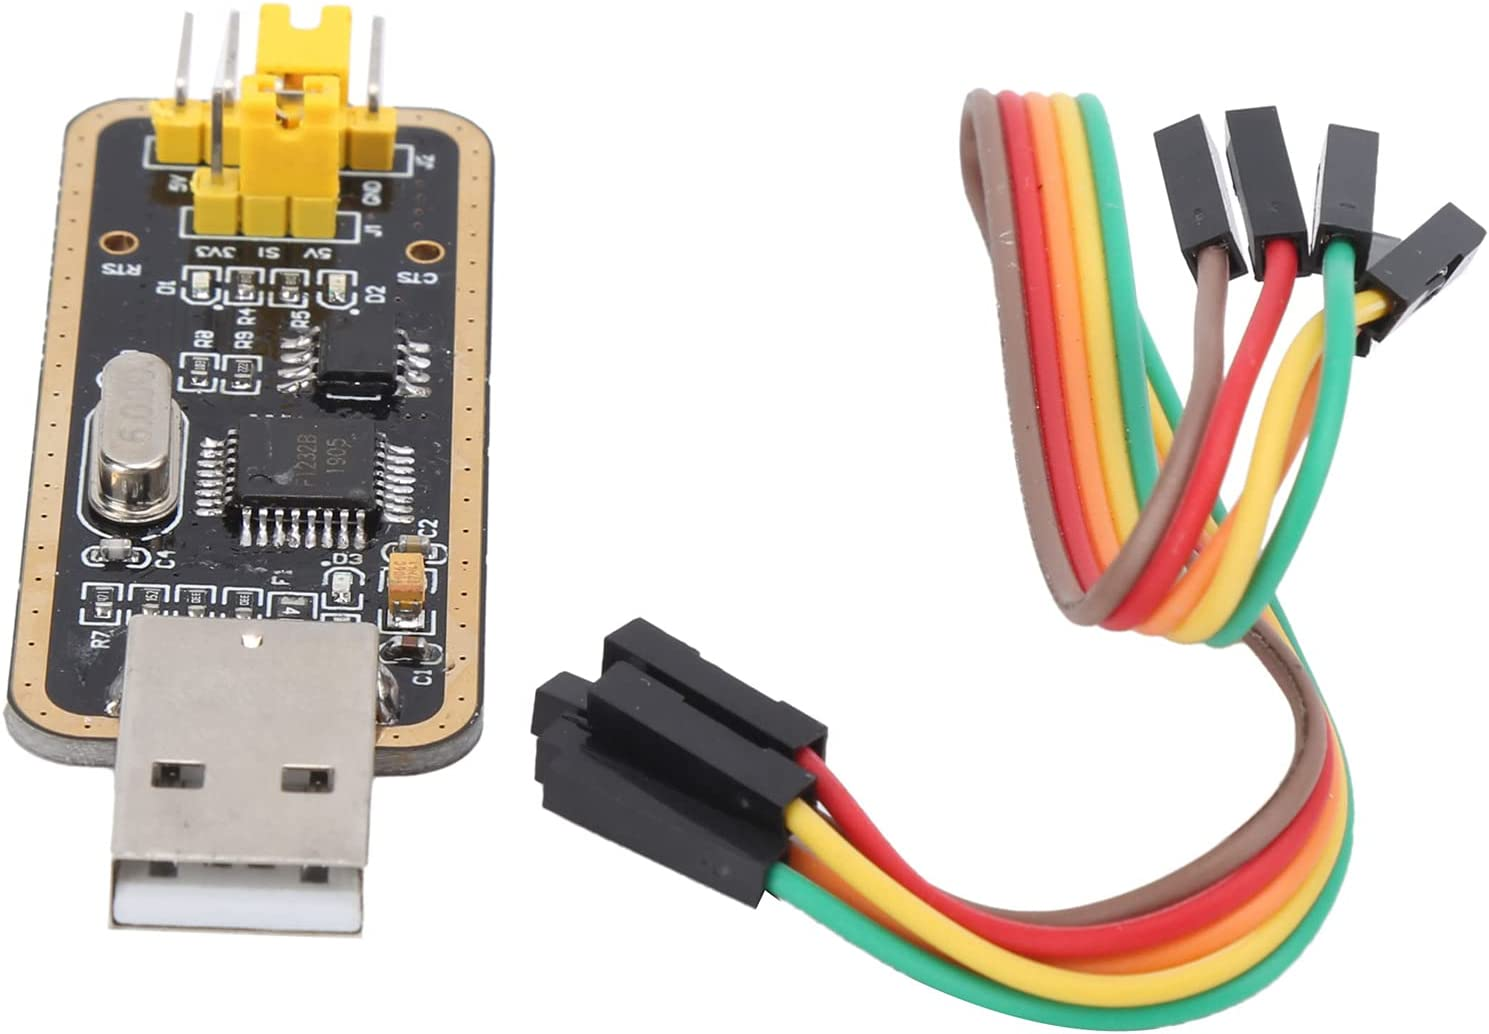 USB Don't miss the campaign to TTL Adapter Module Resin Board Download Upgrade Flash FT Spring new work one after another